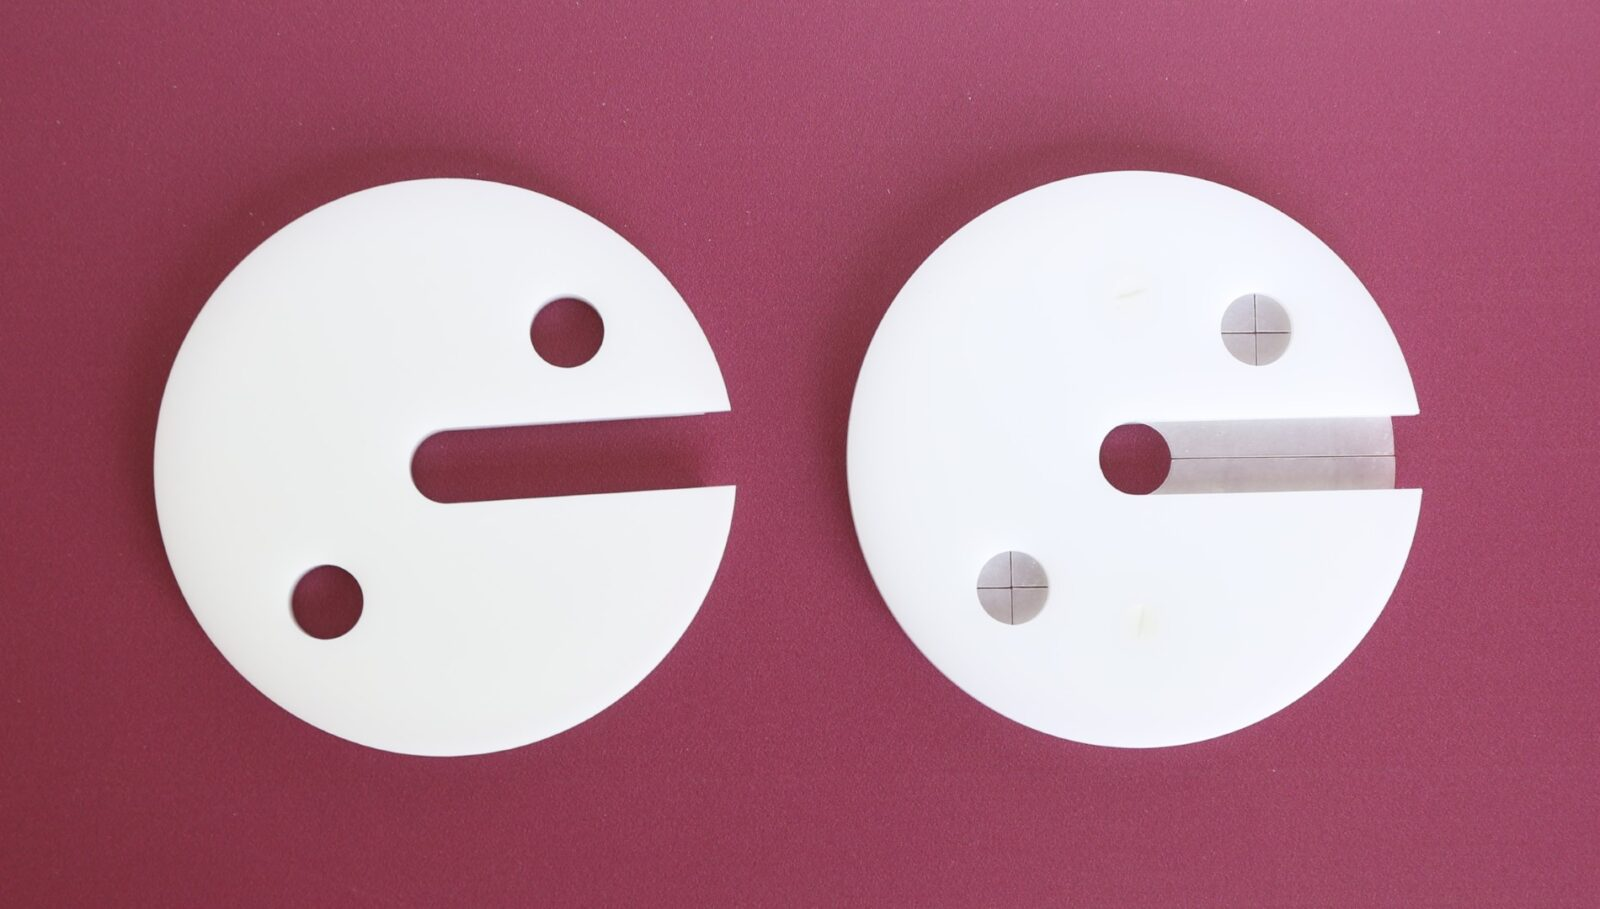 Old vs. new: On the left is the previous cover, on the right is the new vessel cover with silicone inserts to reduce evaporation – now included for all PTWS in the standard scope of supply